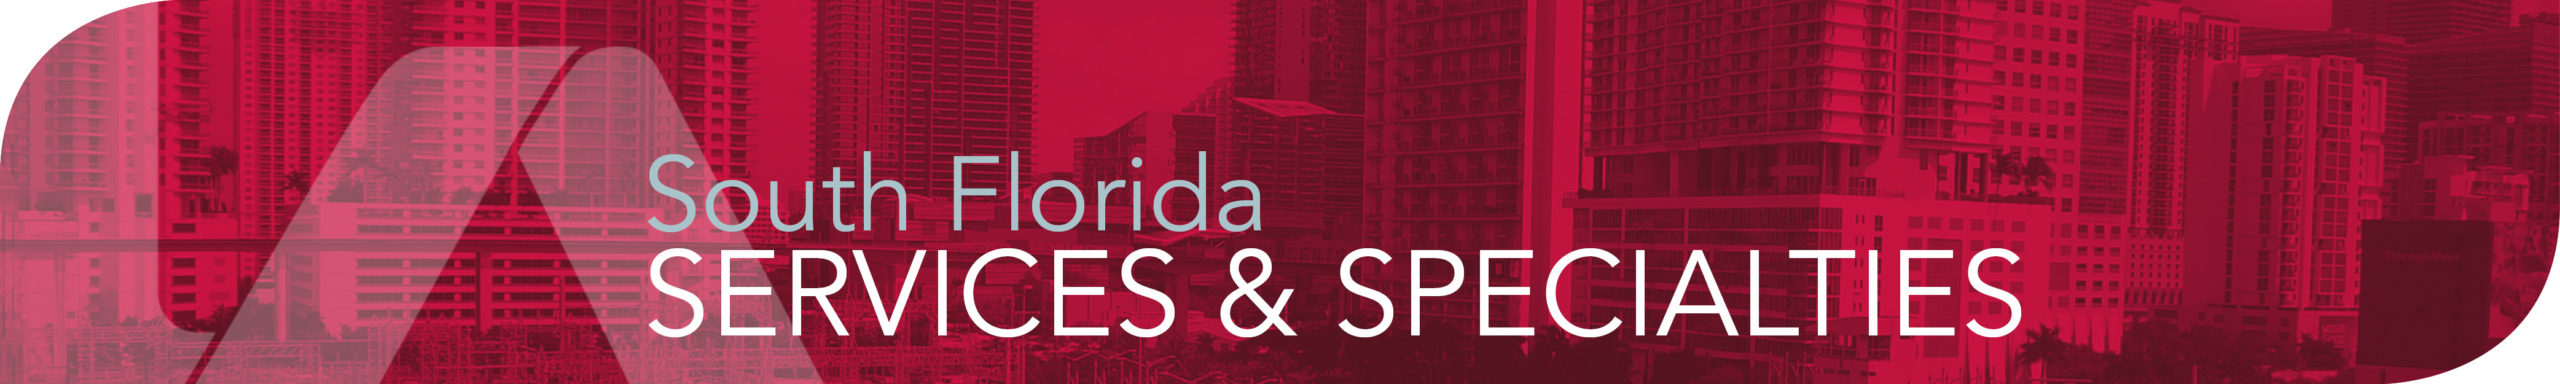 Lee & Associates South Florida Commercial Real Estate Services